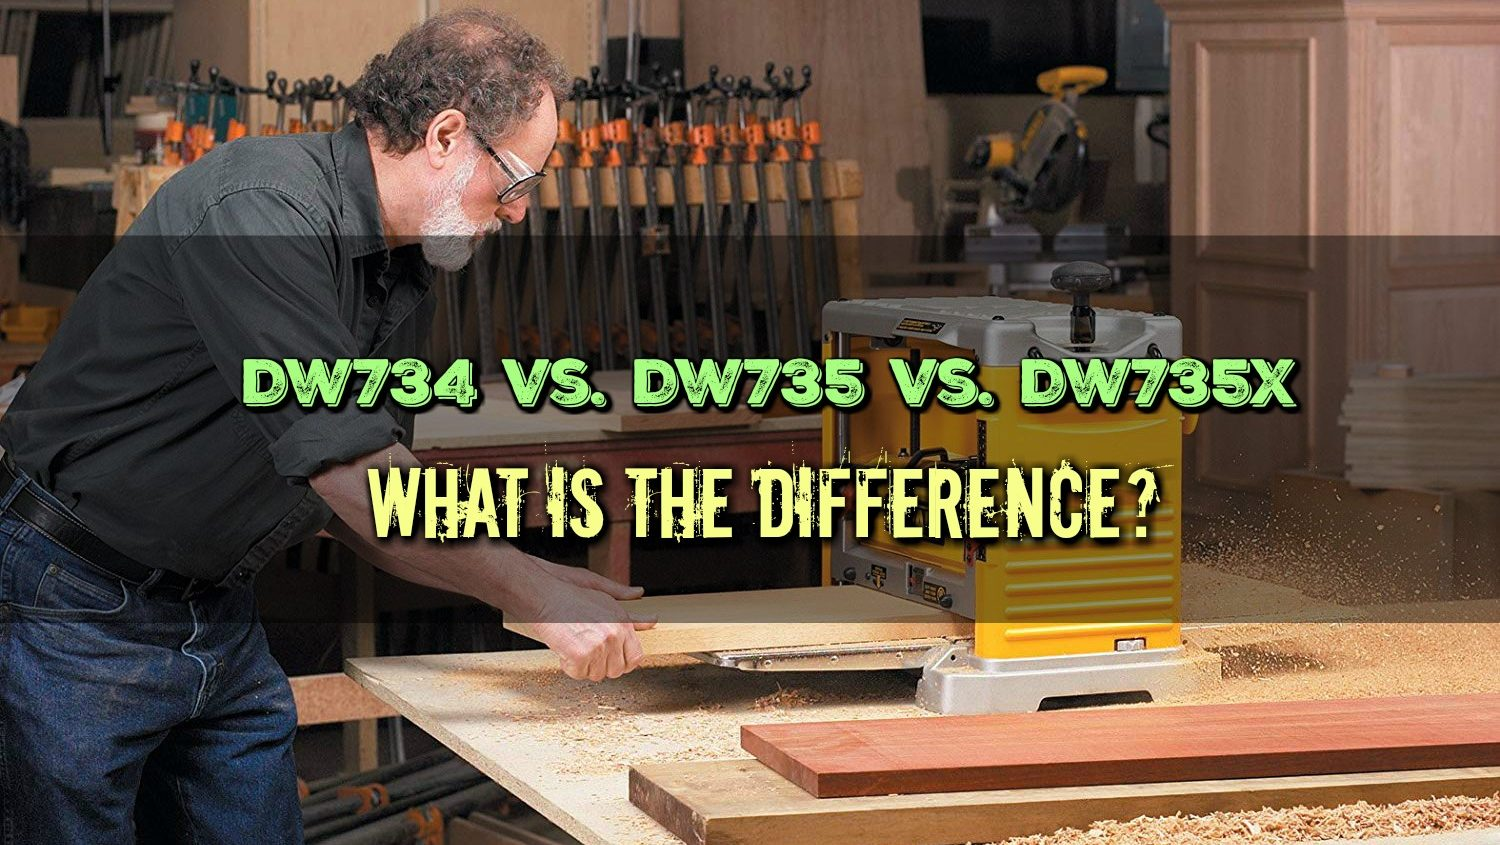 Dw734 Vs Dw735 Vs Dw735x: What Is The Difference?